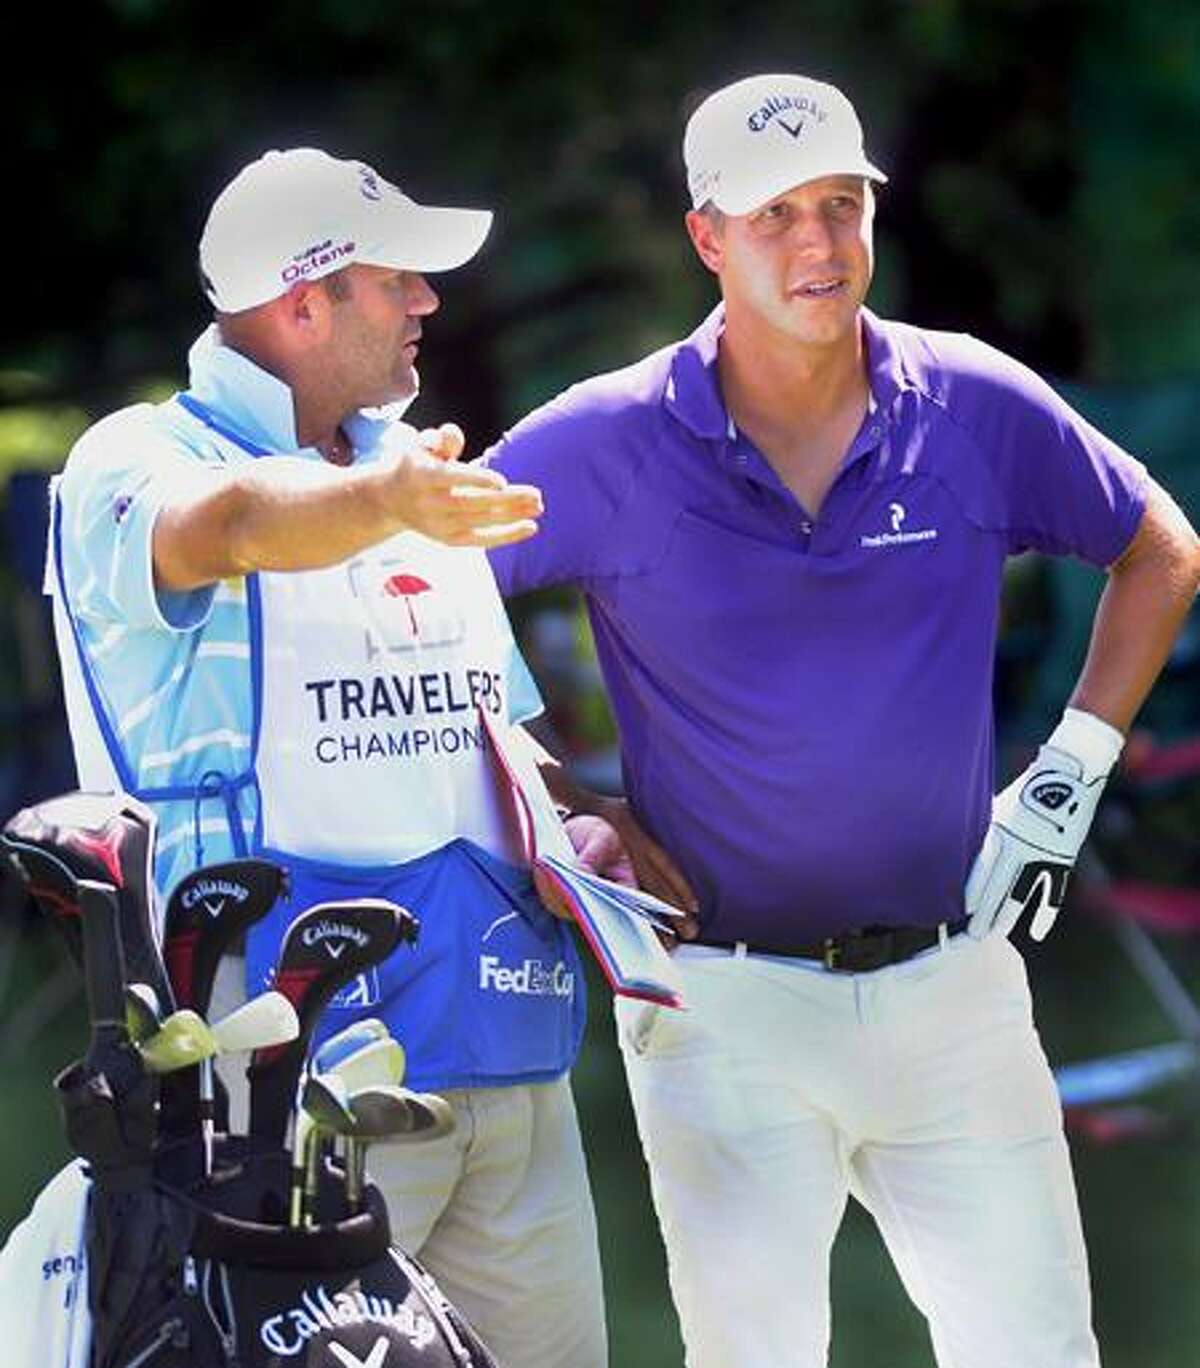 Fredrik Jacobson confers with his caddy during the Travelers Championship on Saturday. (Melanie Stengel/Register)